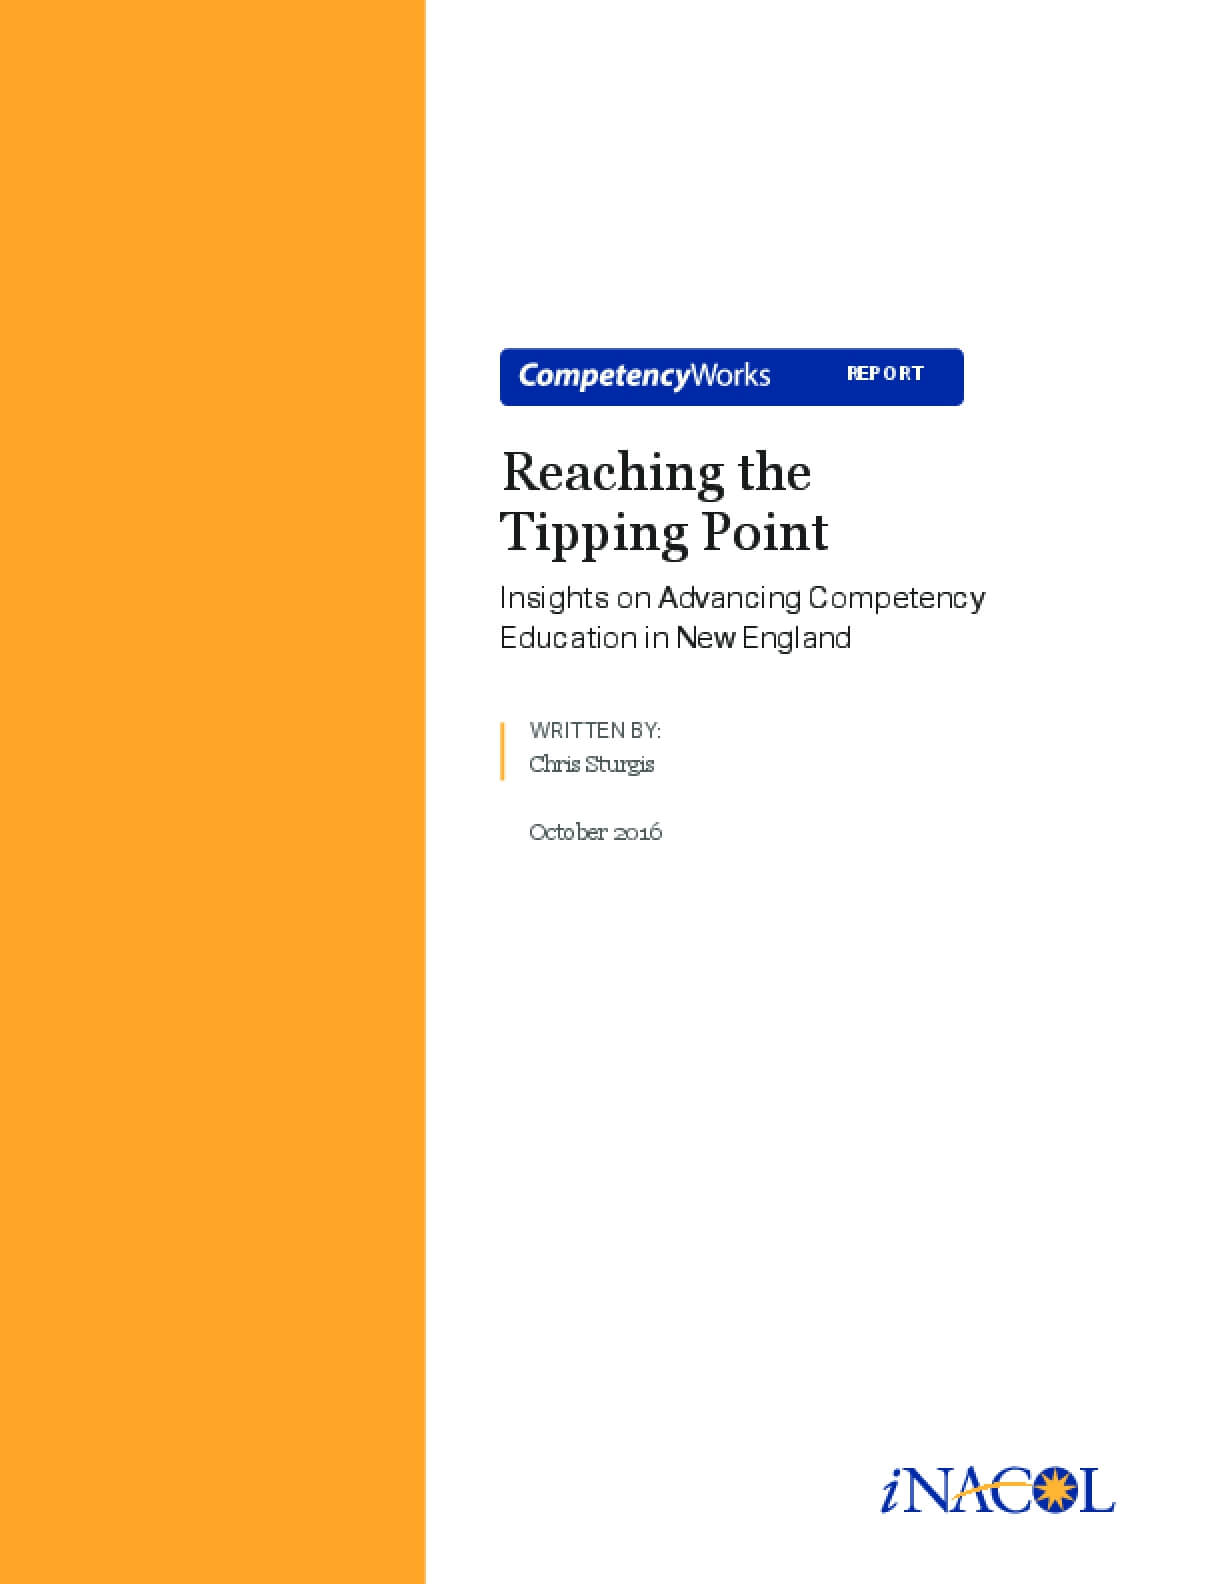 Reaching the Tipping Point: Insights on Advancing Competency Education in New England